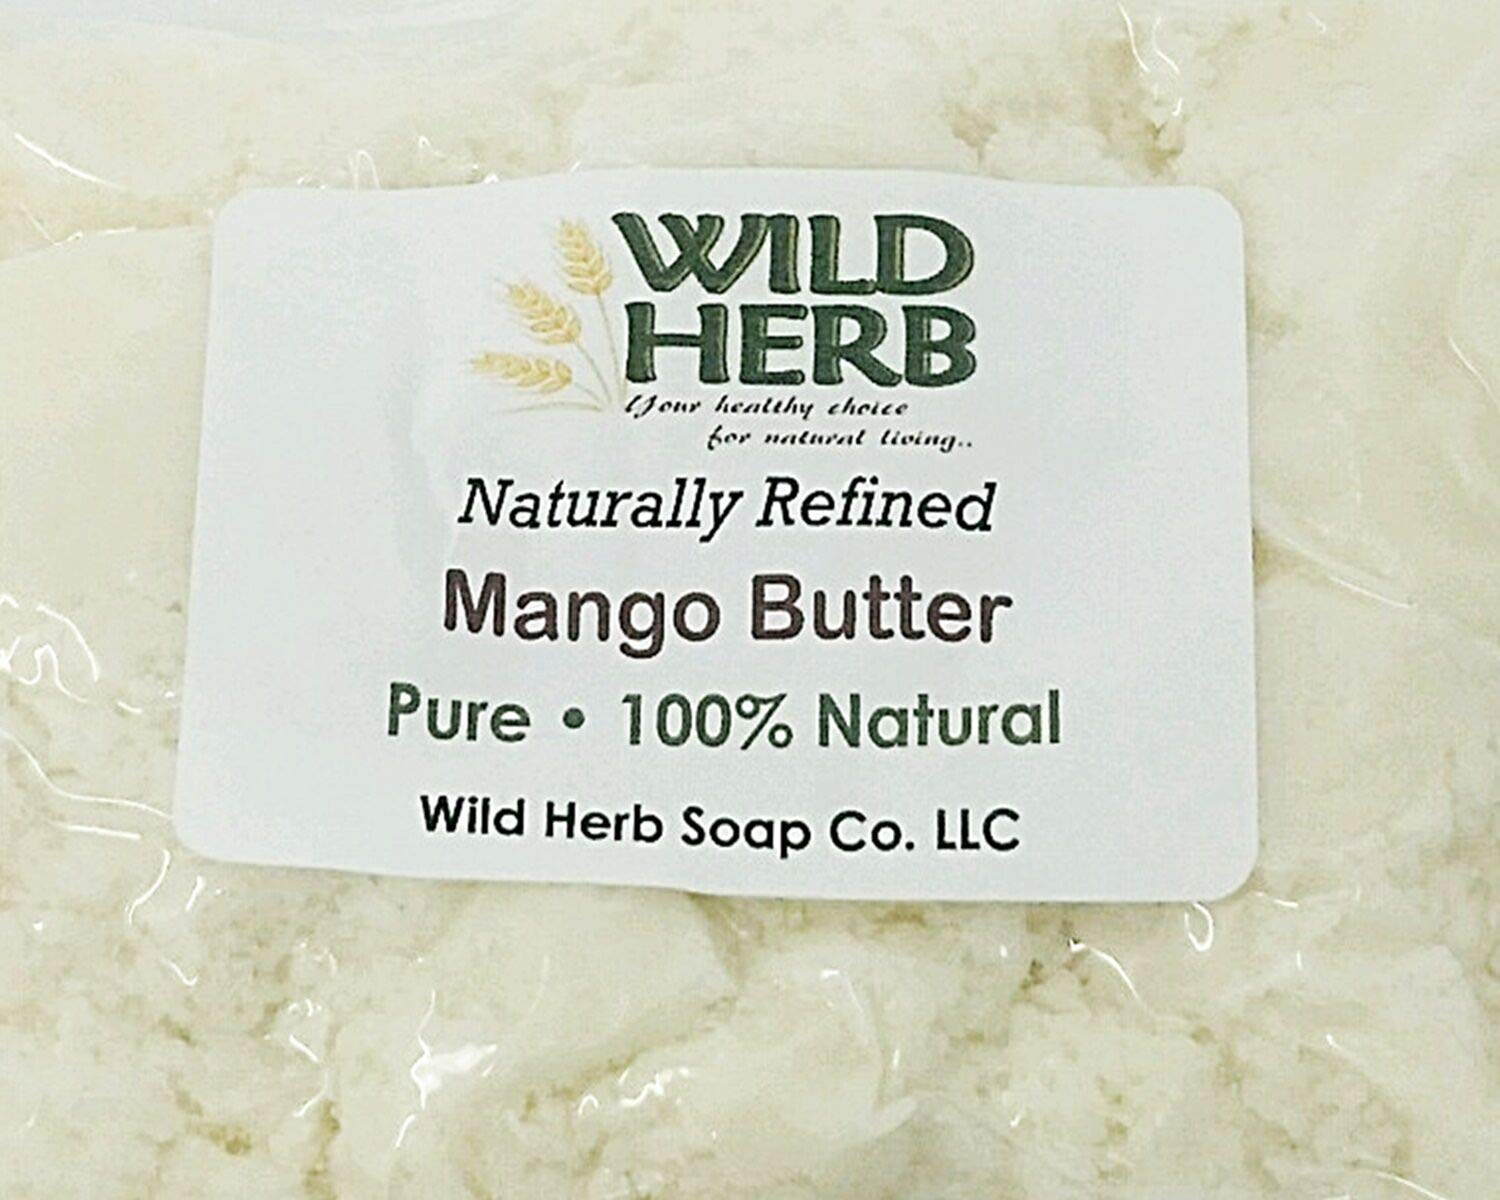 Mango Butter sourced from a USDA and ISO 9001 Certified Organic Supplier